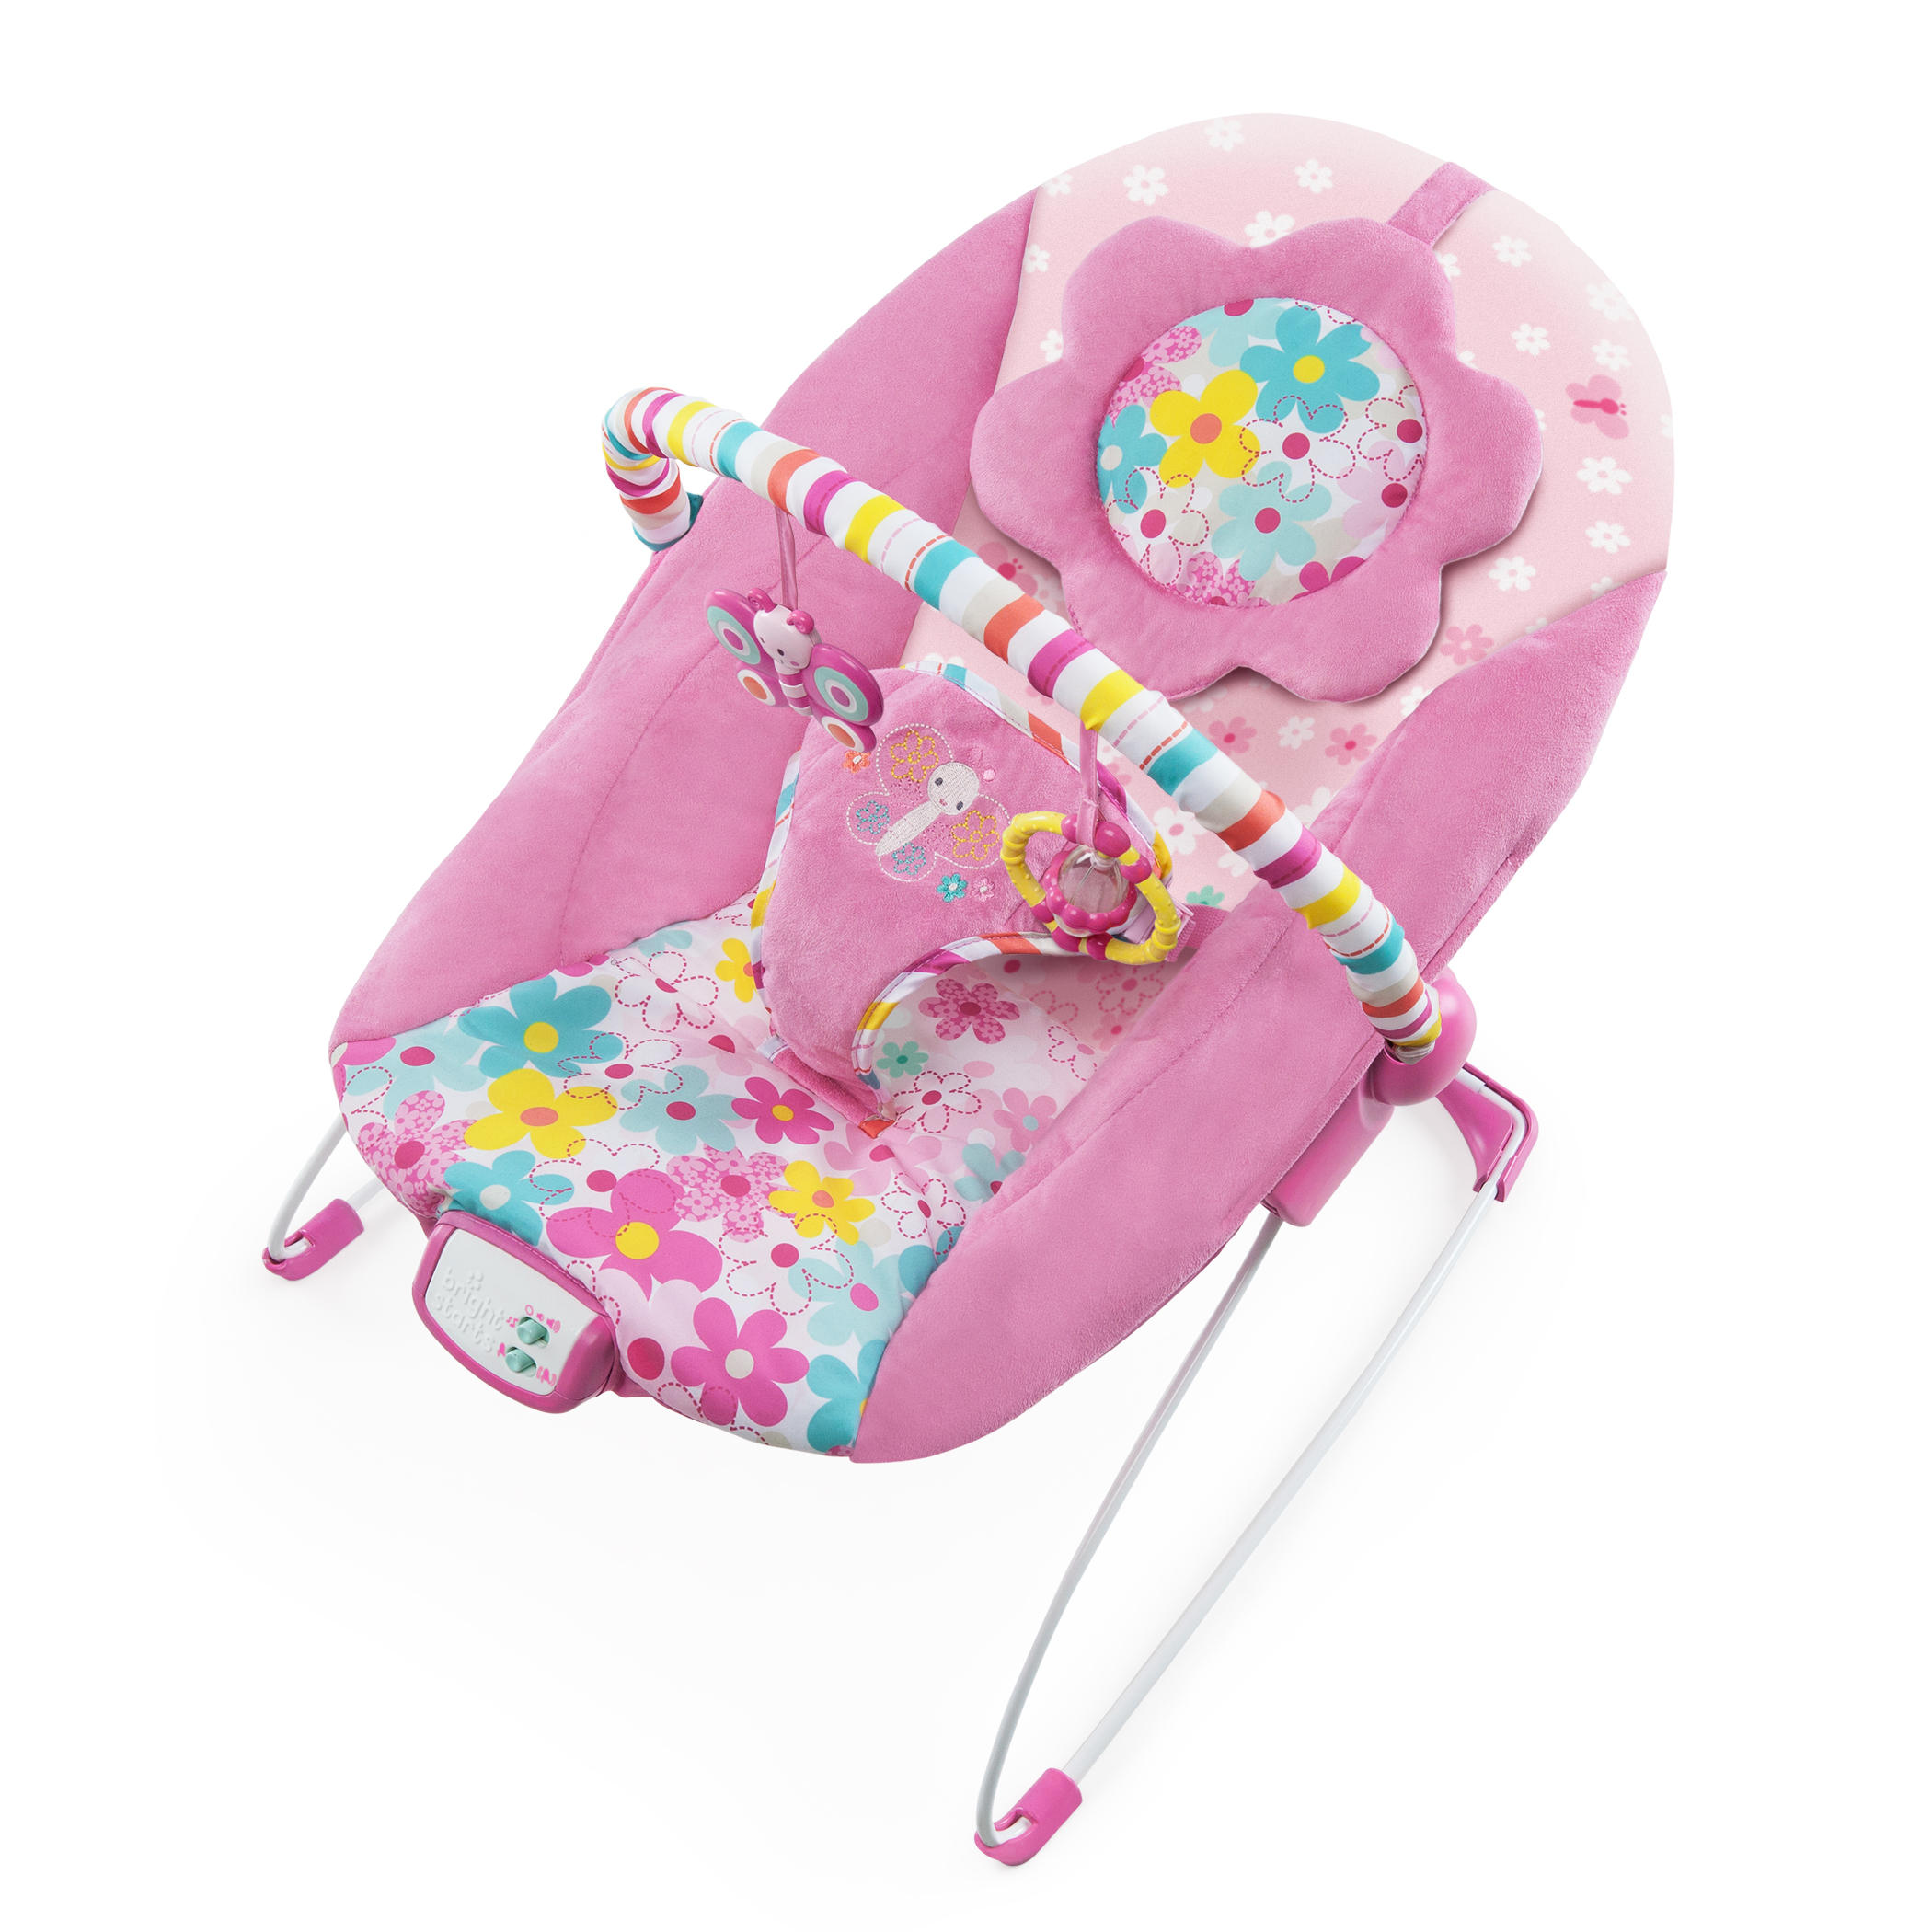 Bright Starts Pretty In Pink Butterfly Cutouts Bouncer